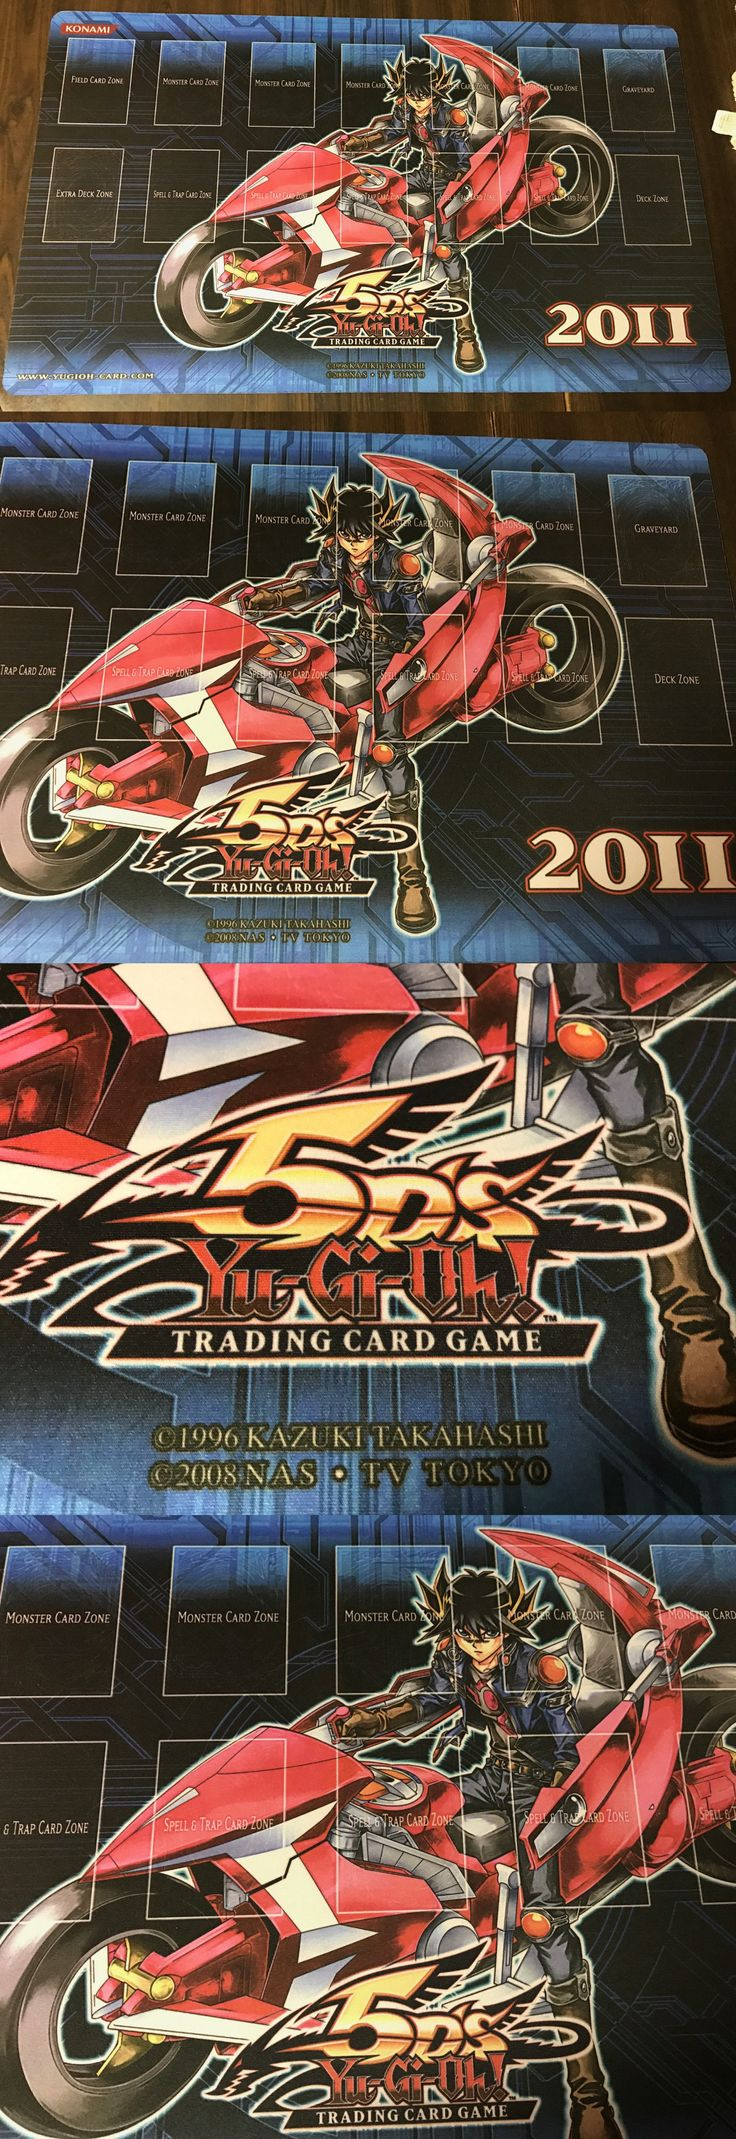 Other Yu-Gi-Oh TCG Items 31397: Rare New Yu-Gi-Oh Trading Card Game 5D S Playmat Mat Unused Free Us Shipping!!! -> BUY IT NOW ONLY: $35.99 on eBay!